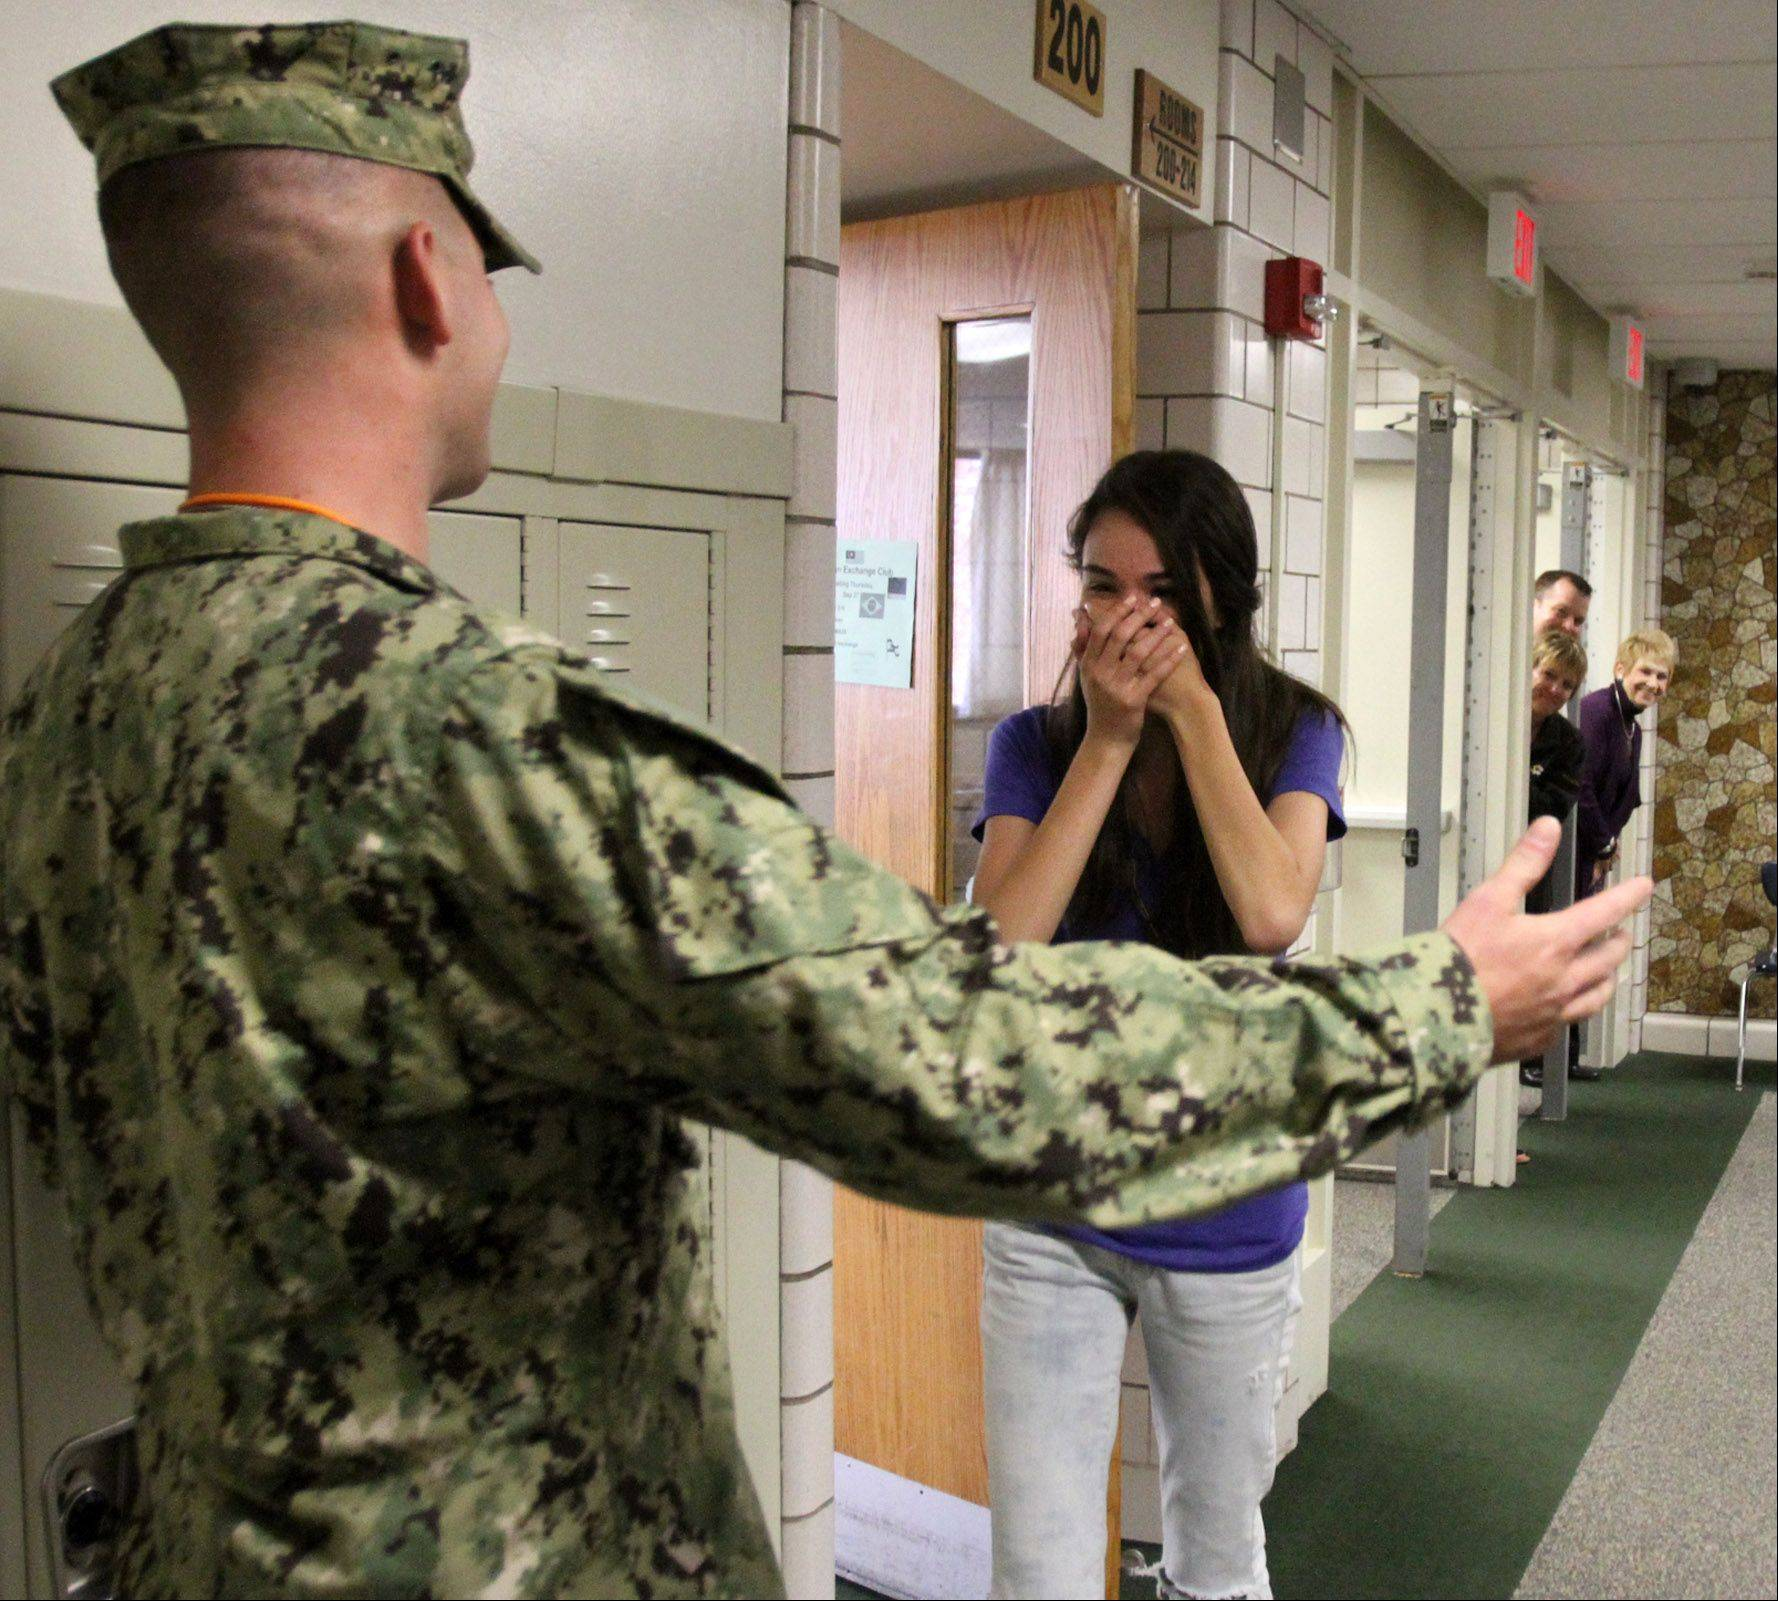 Petty Officer 3rd Class Cameron Schwartz of the U.S. Navy, who was deployed in Afghanistan for eight months, surprises younger sister Jackie Trujillo during her Spanish class Wednesday at Fremd High School.